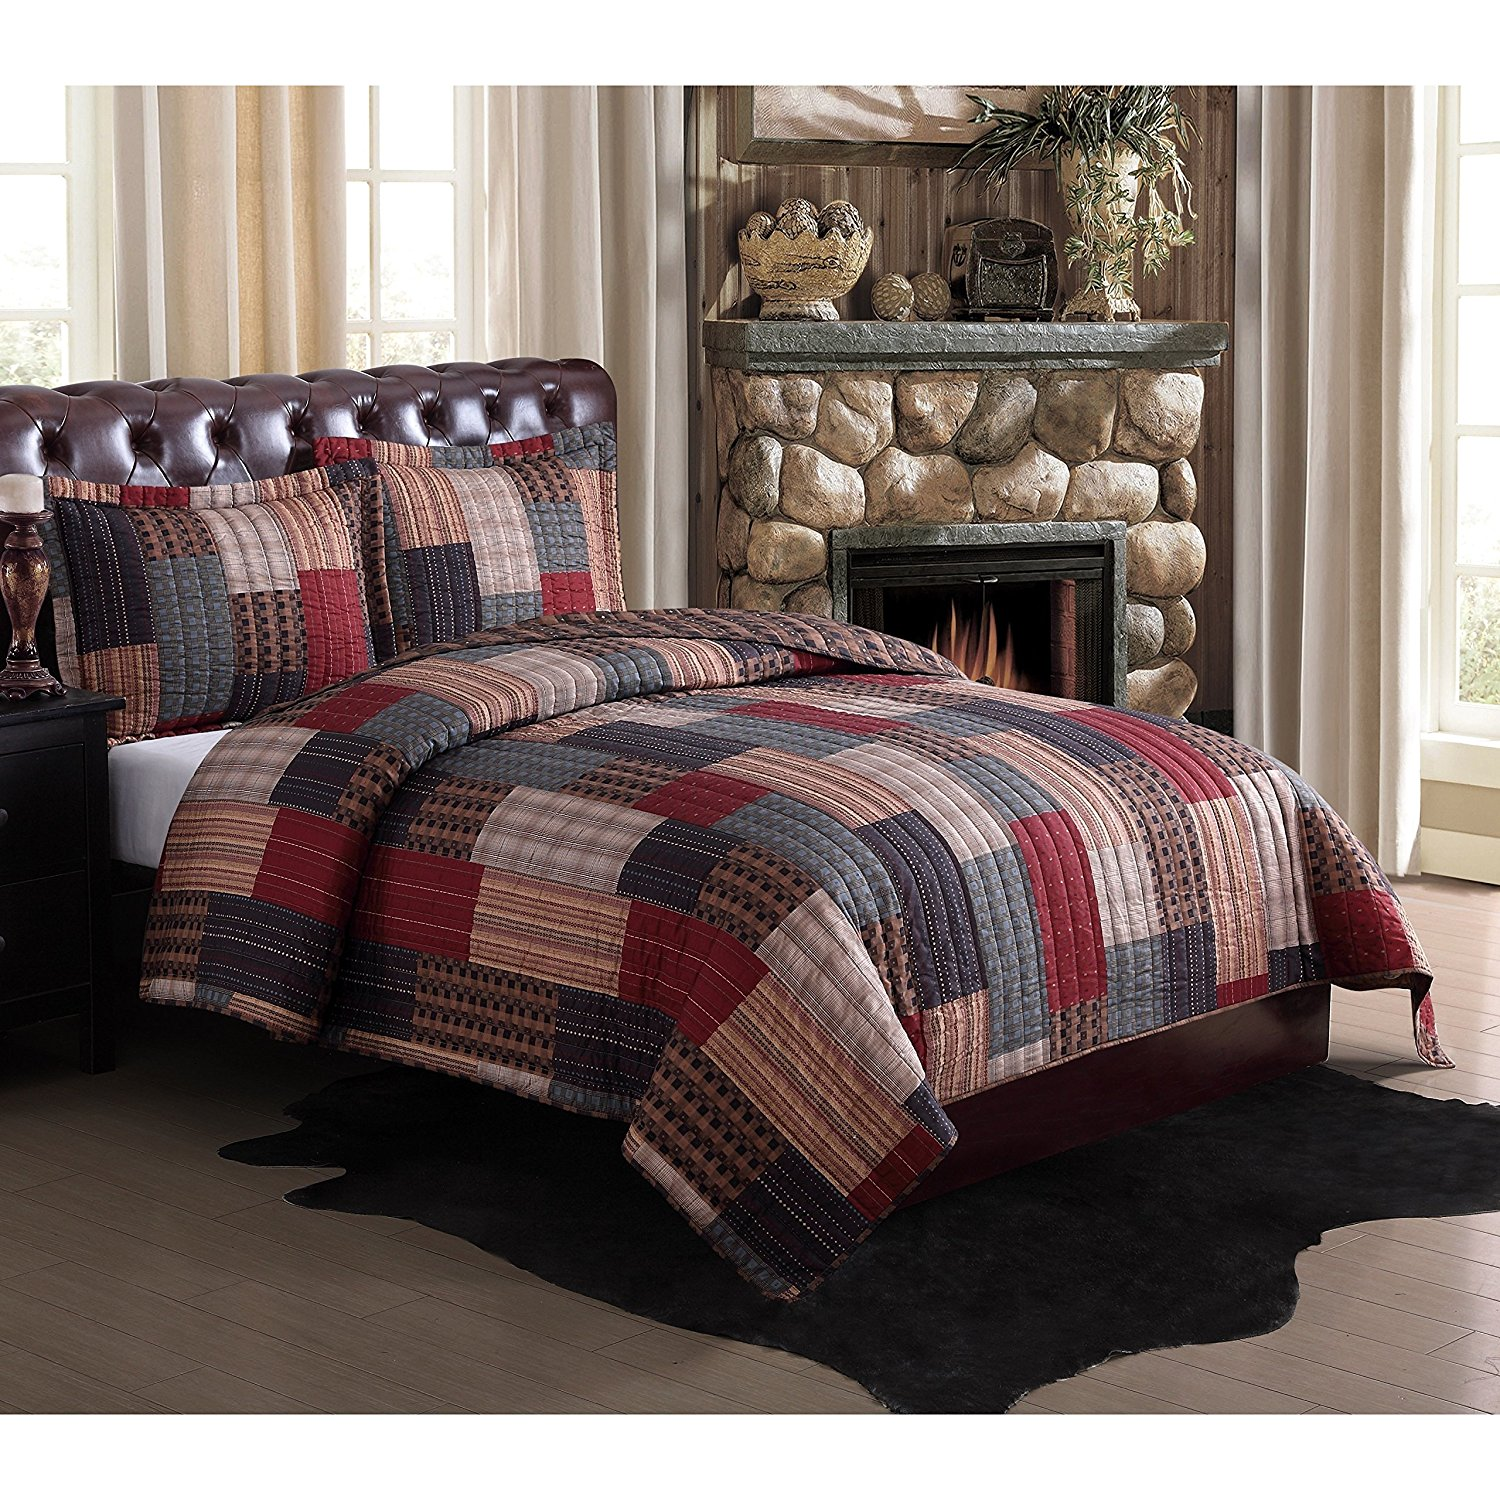 D&H 3 Piece Multi Color Patchwork Plaid Theme Quilt Full Queen Set, Stylish Patch Work Block Pattern Beddding, Square Rectangle French Country Lodge Cabin Themed, Burgundy Red Blue Tan Brown